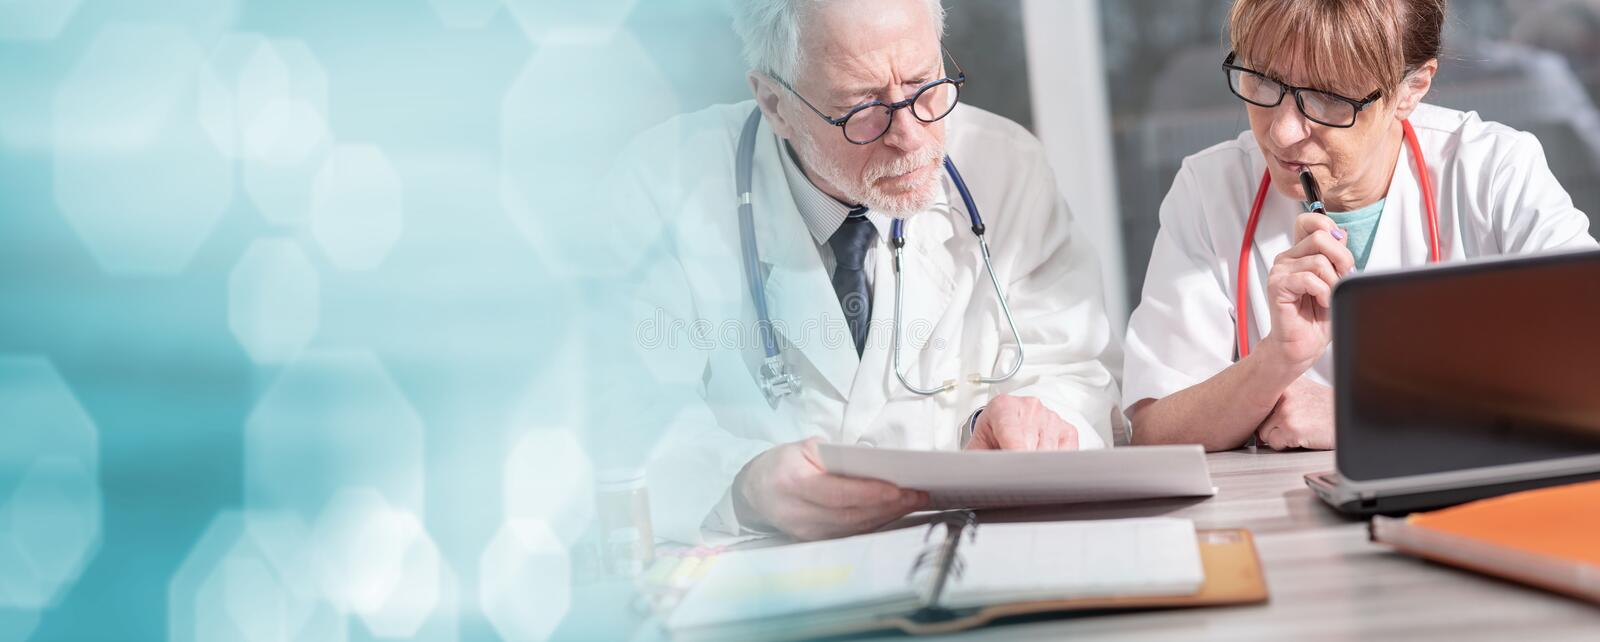 Two doctors discussing about medical results; panoramic banner royalty free stock images